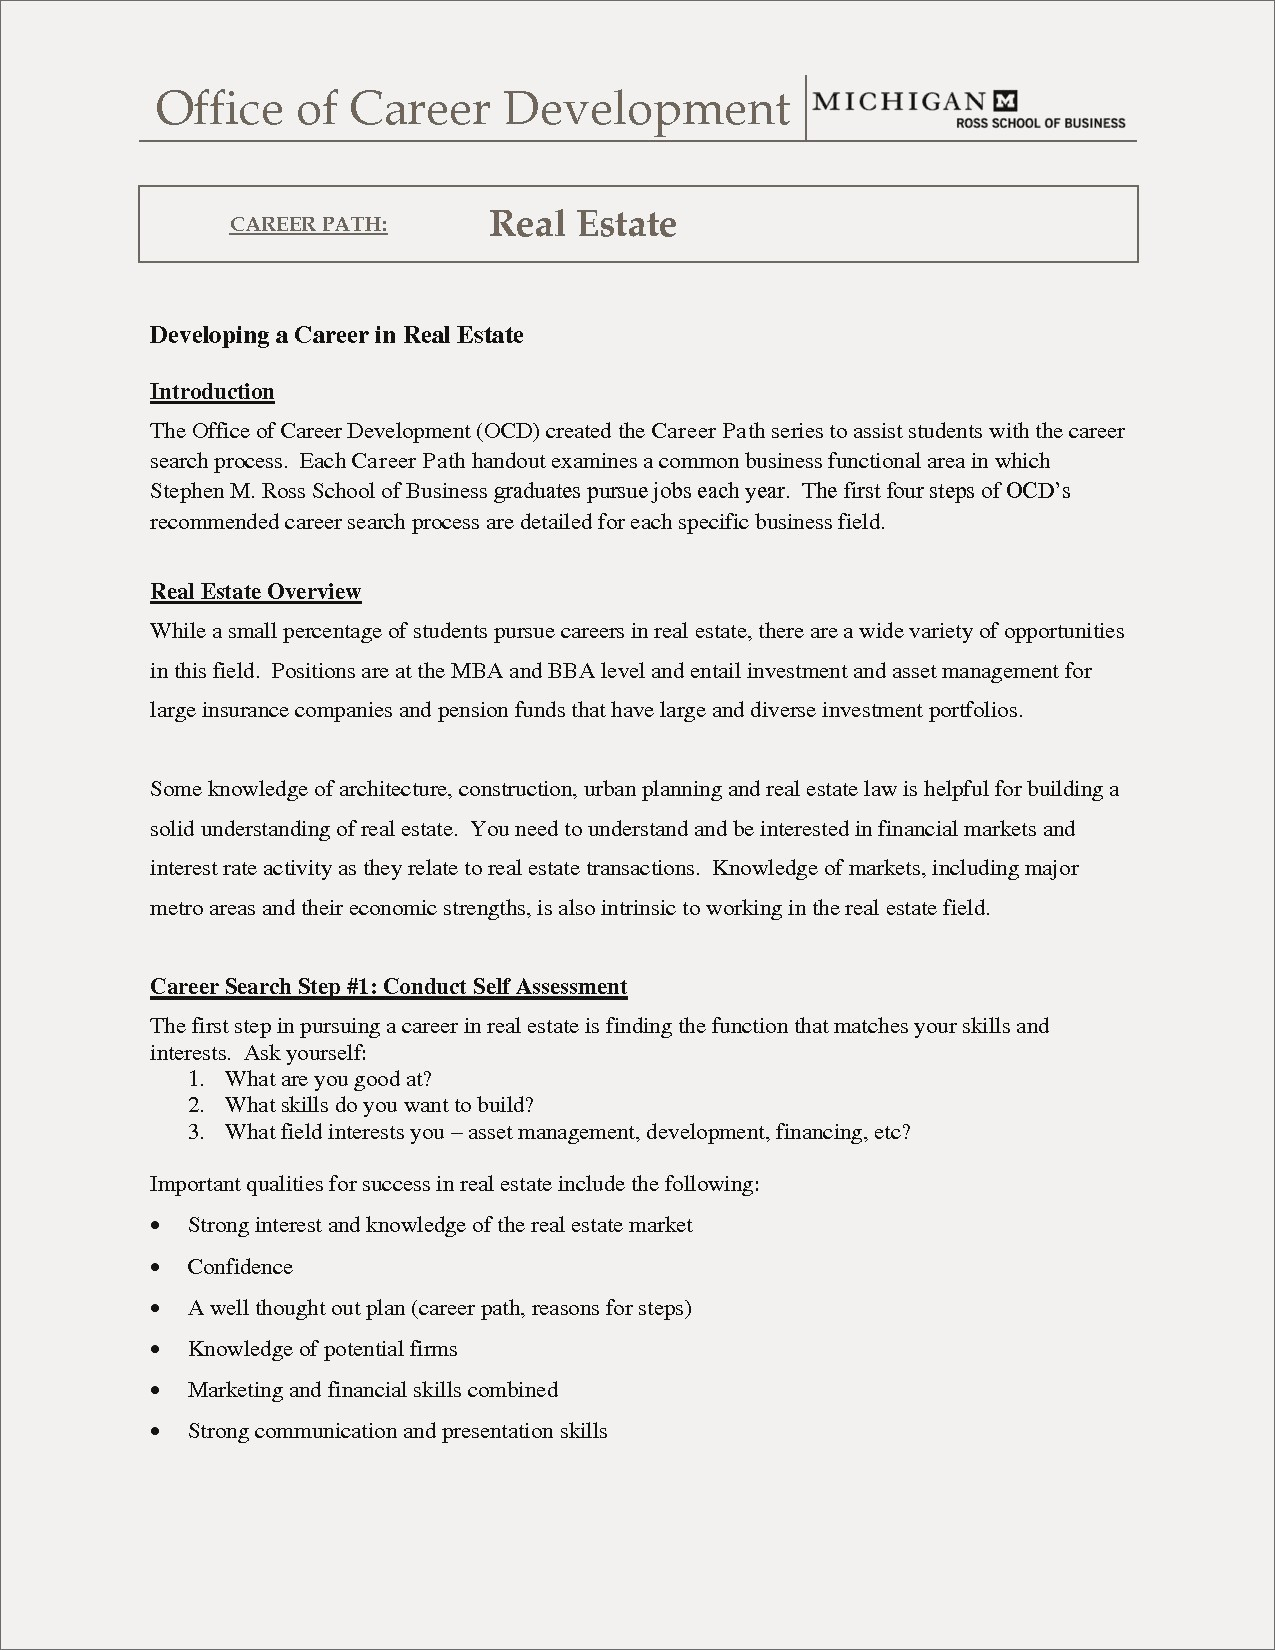 Ross School Of Business Resume Template - Real Estate assistant Resume New Ross School Business Resume